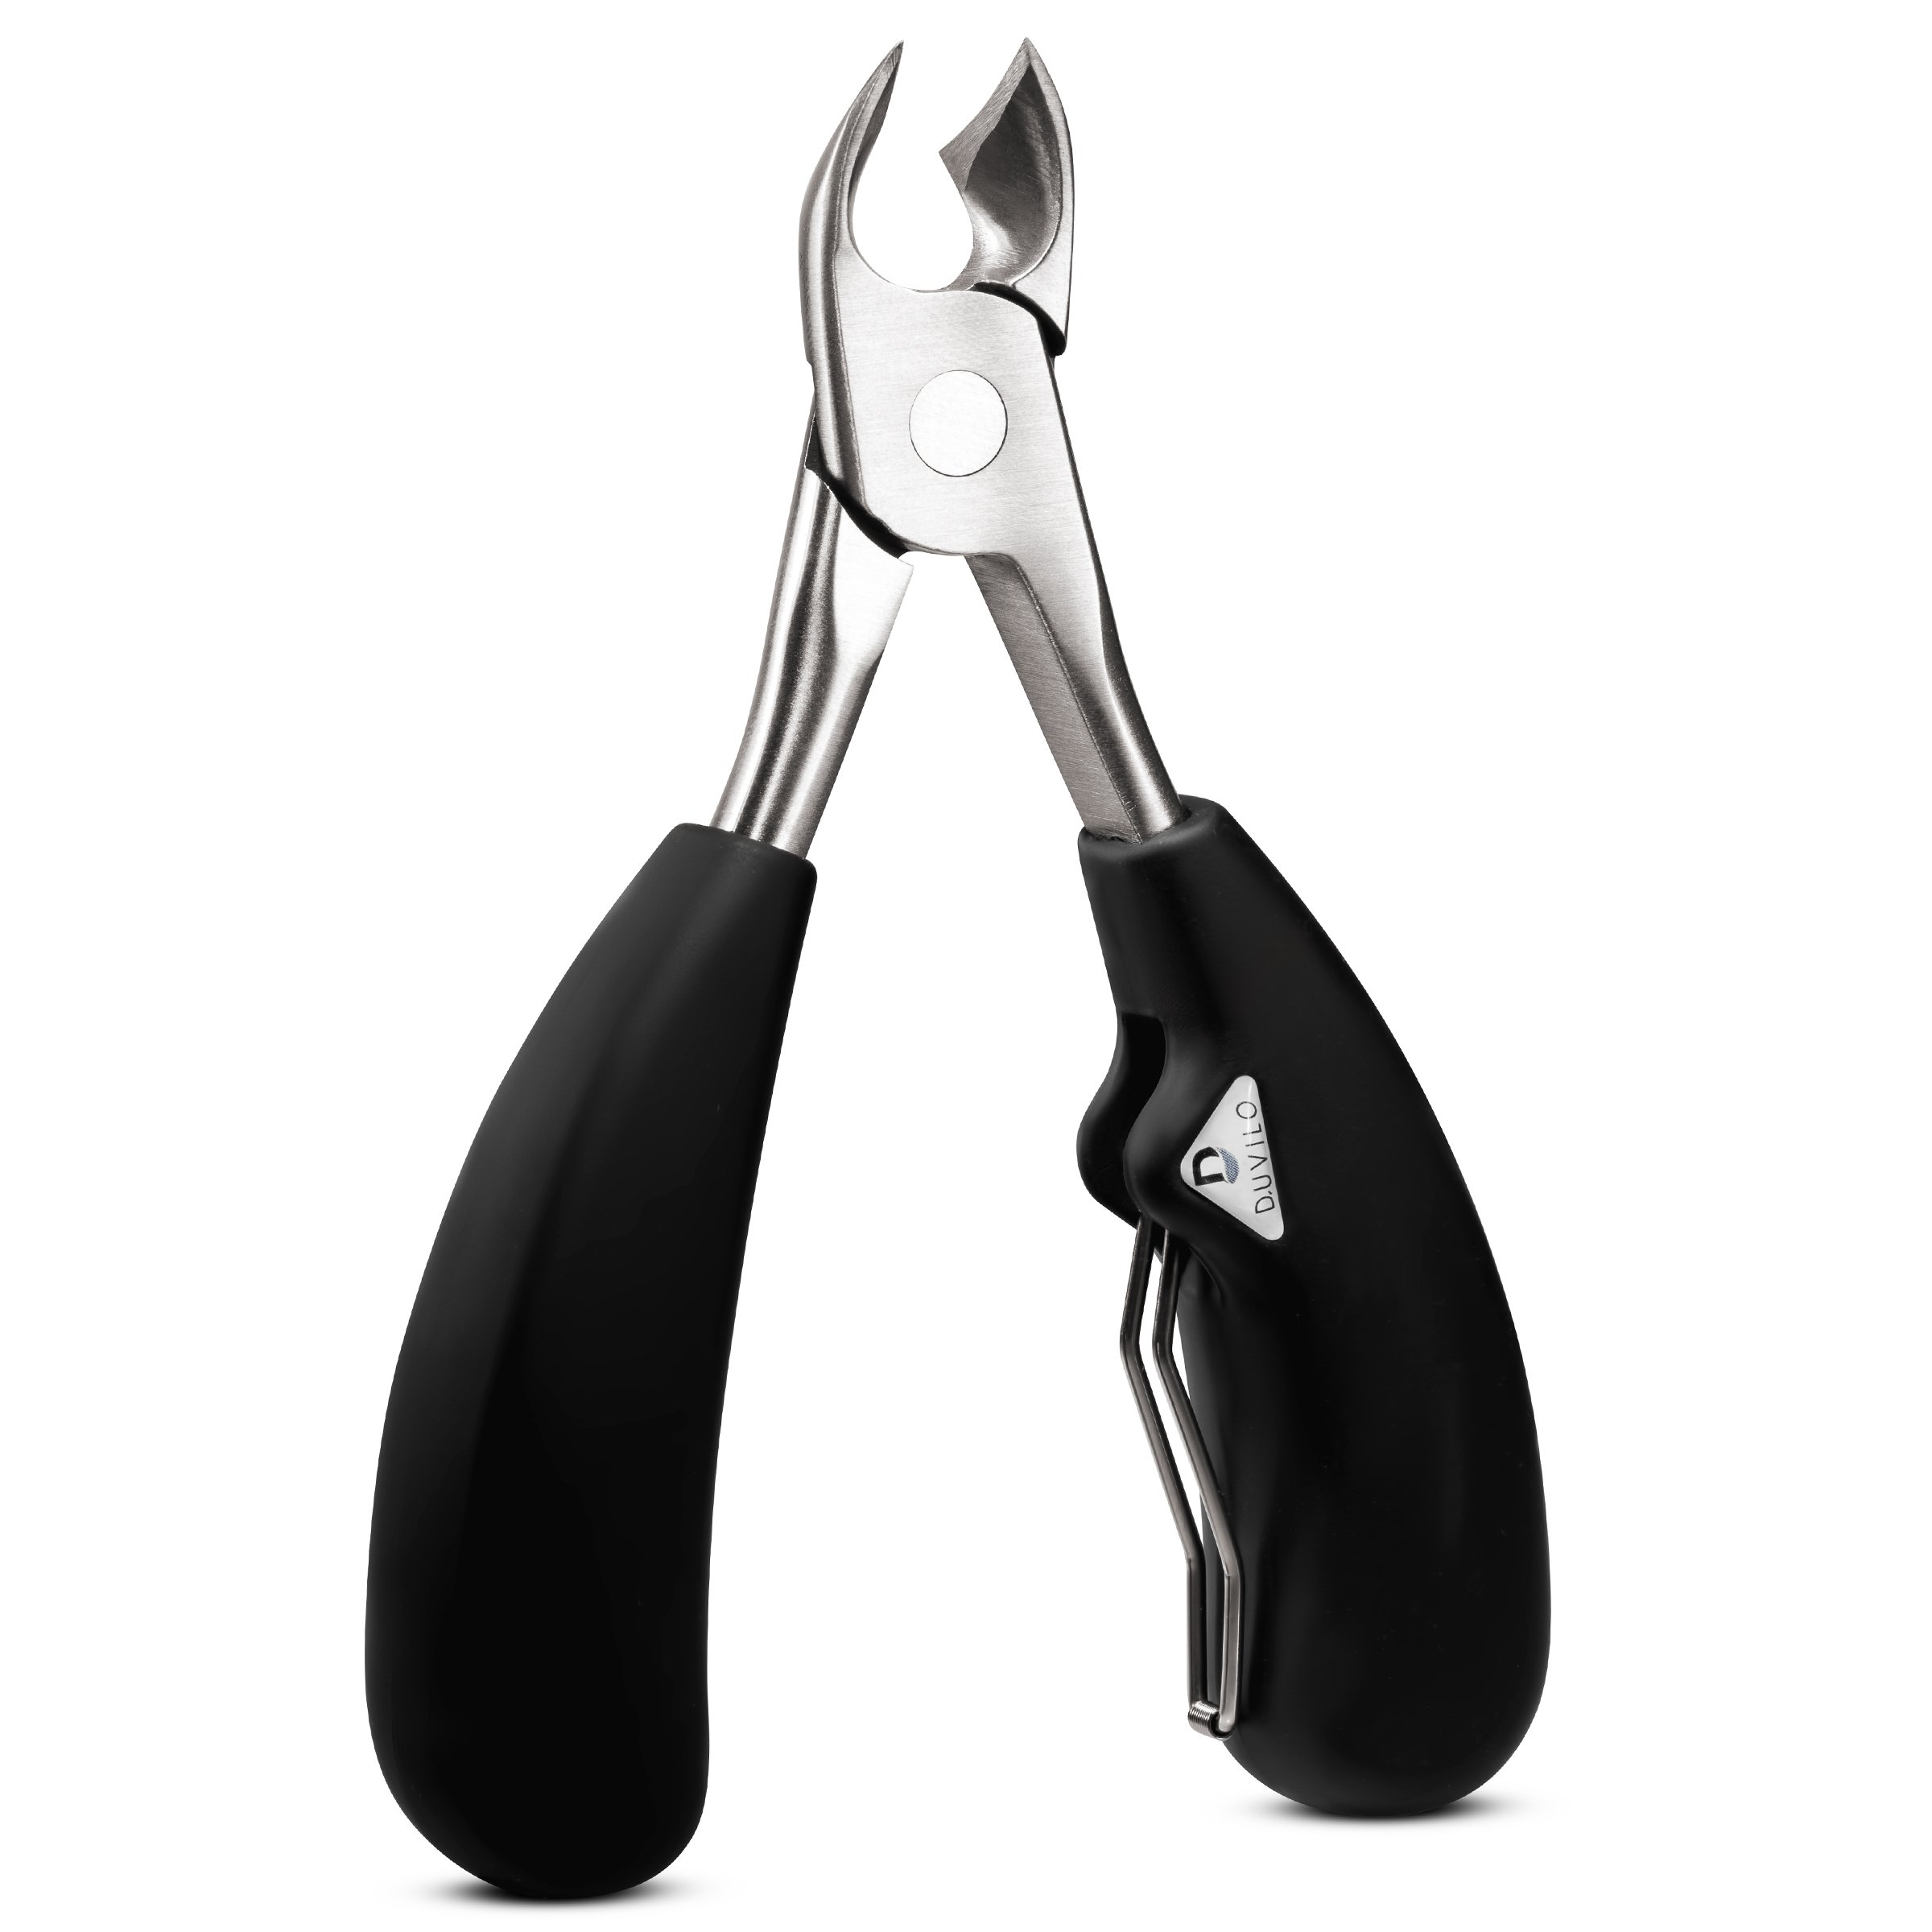 Heavy Duty Toenail Clippers for Ingrown and Thick Nails - Super Sharp Blades with Soft Ergonomic Grip Handles for Faster Nail Clipping - Professional Trimmer Pain Free by Duvilo by Duvilo (Image #5)